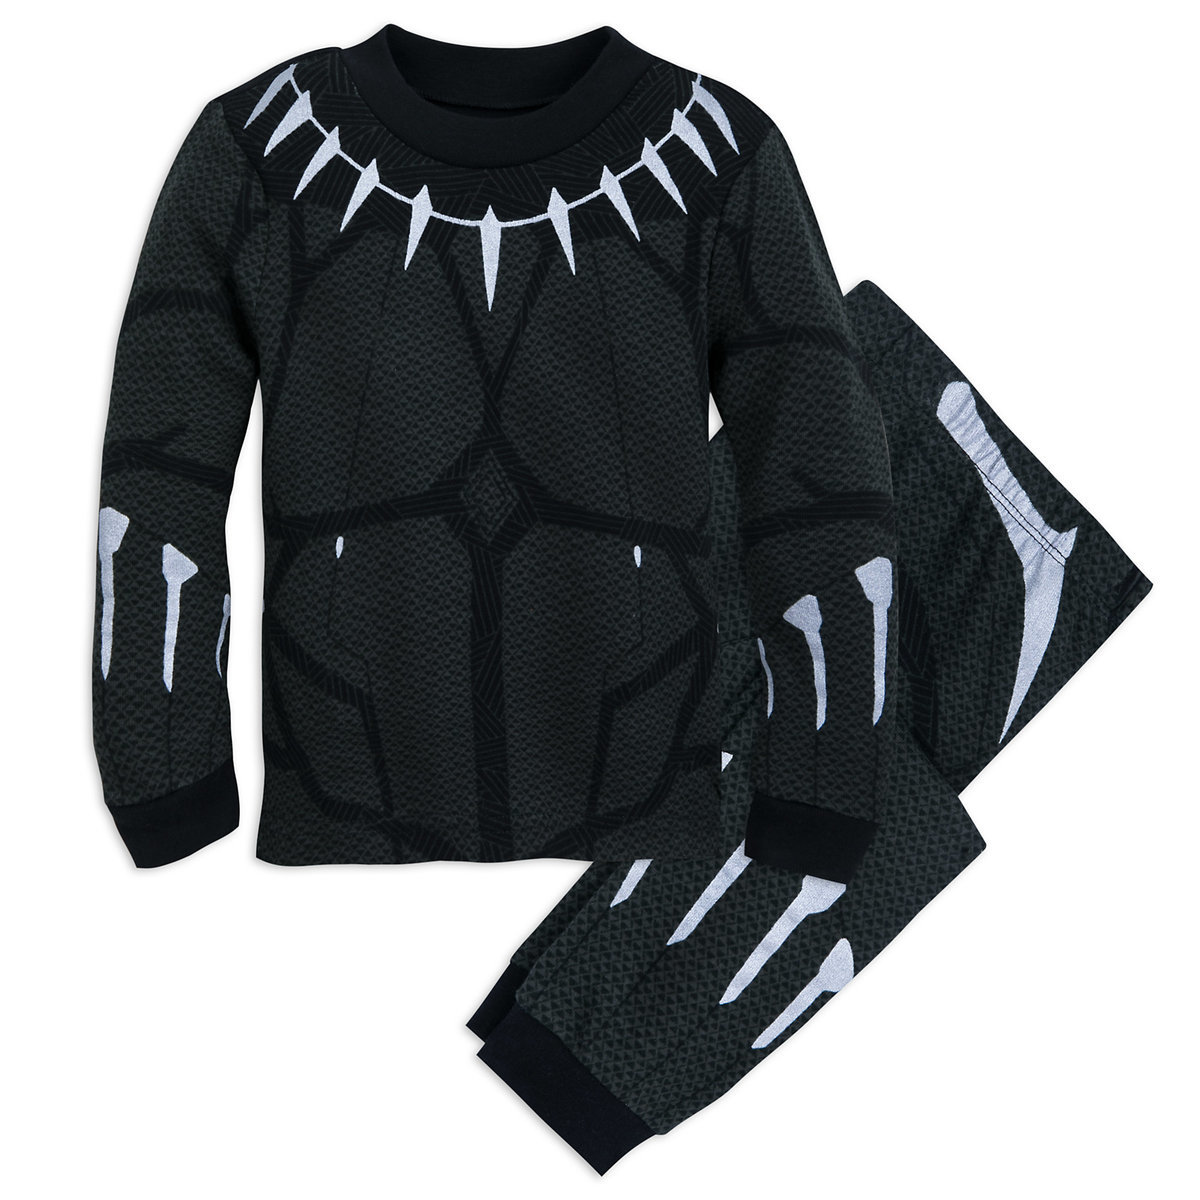 288b8281 Product Image of Black Panther Costume PJ PALS for Boys # 1